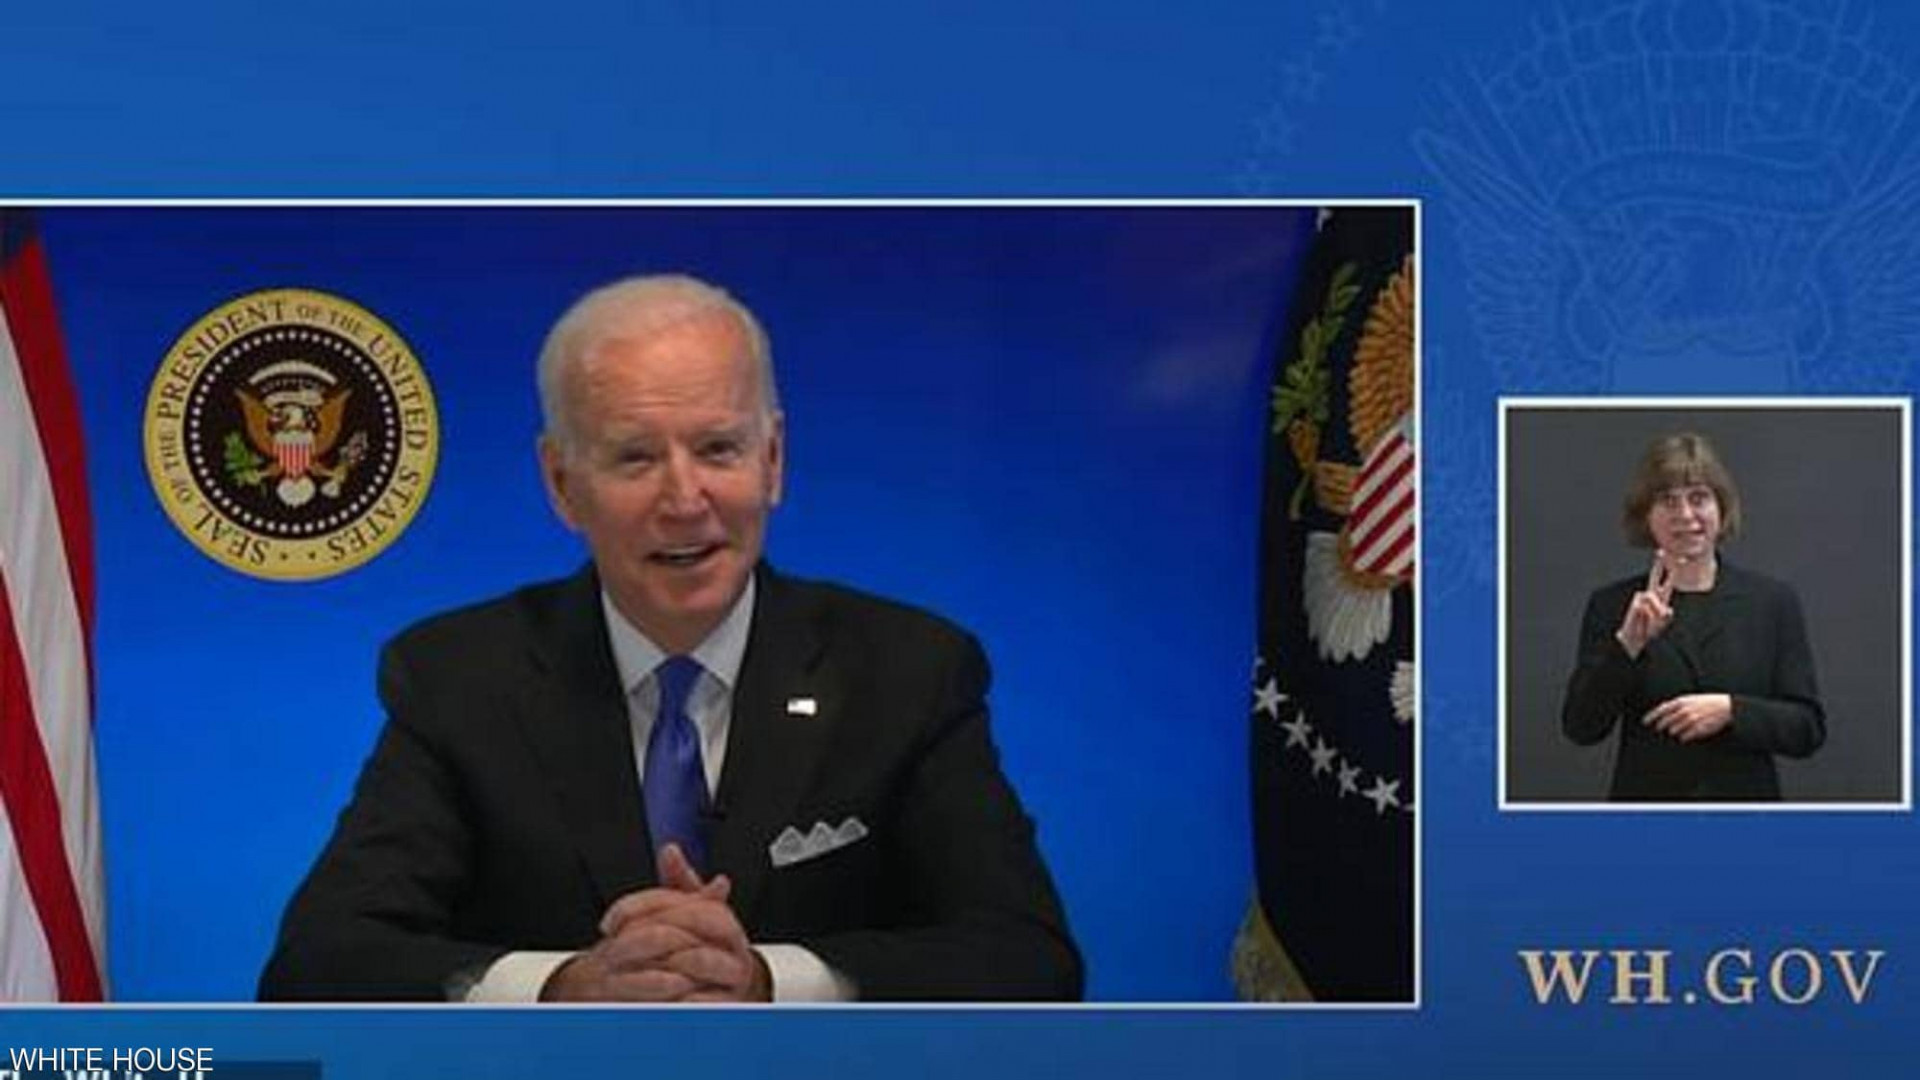 Inexplicably the White House cuts a live broadcast of Biden